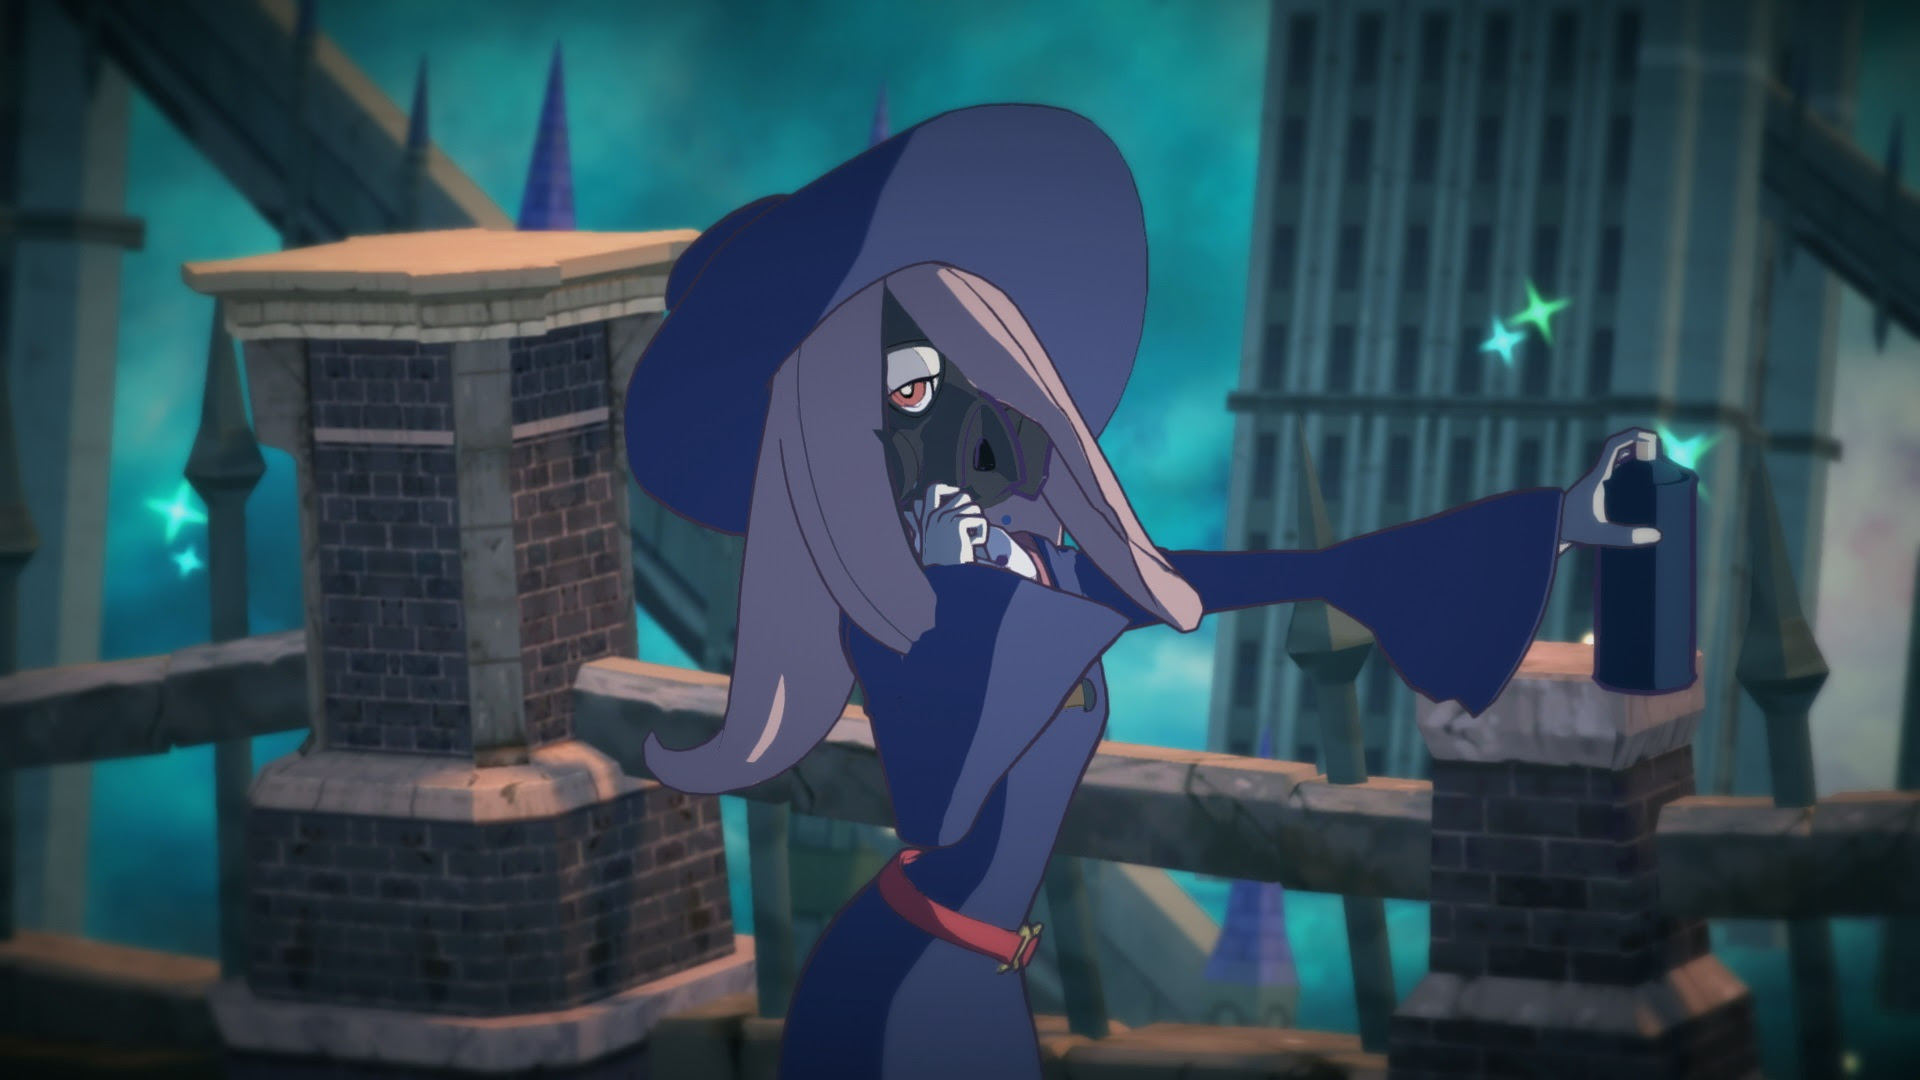 Little Witch Academia: Chamber of Time stream shows off new trailer, playable characters screenshot